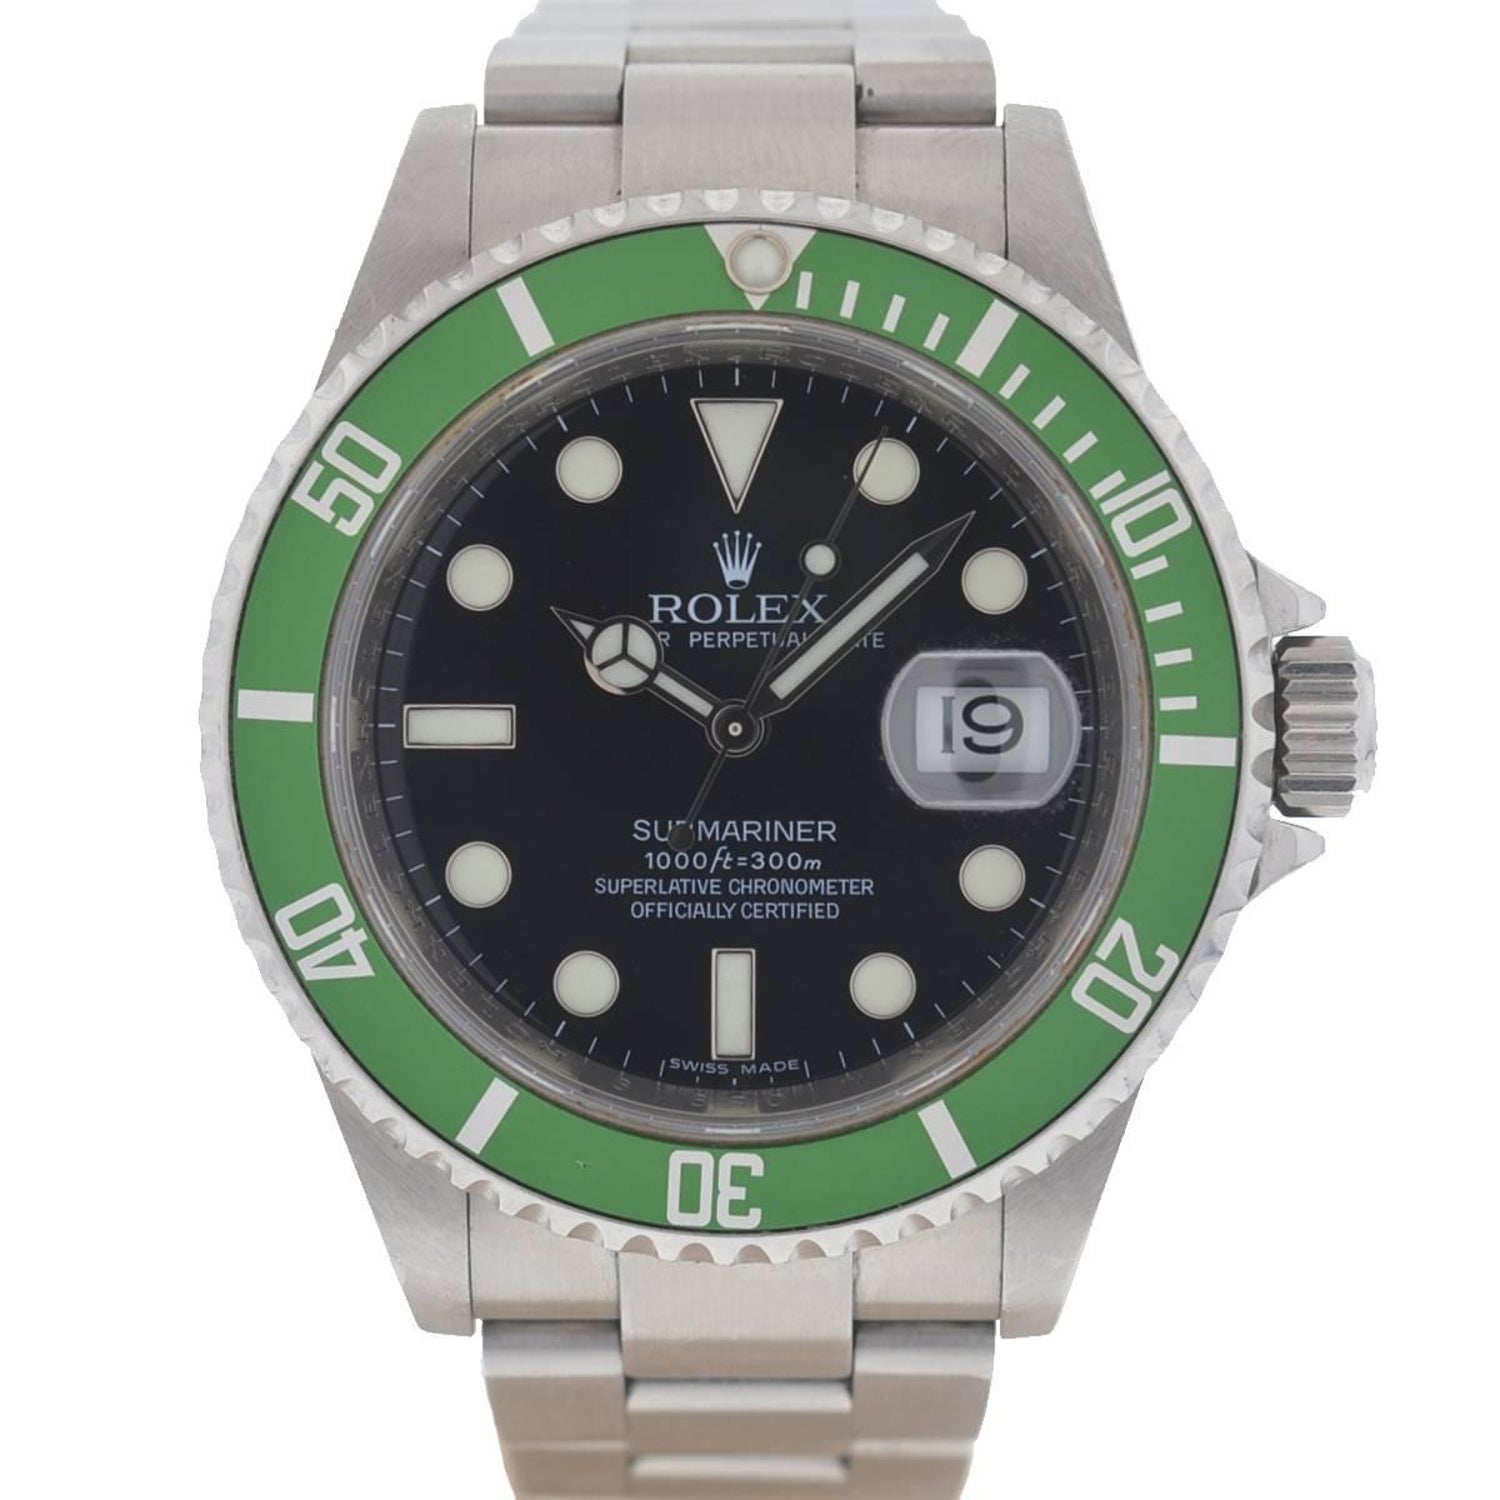 image submariner dial above to watches rolex green hulk zanniversary mariner sub click enlarge